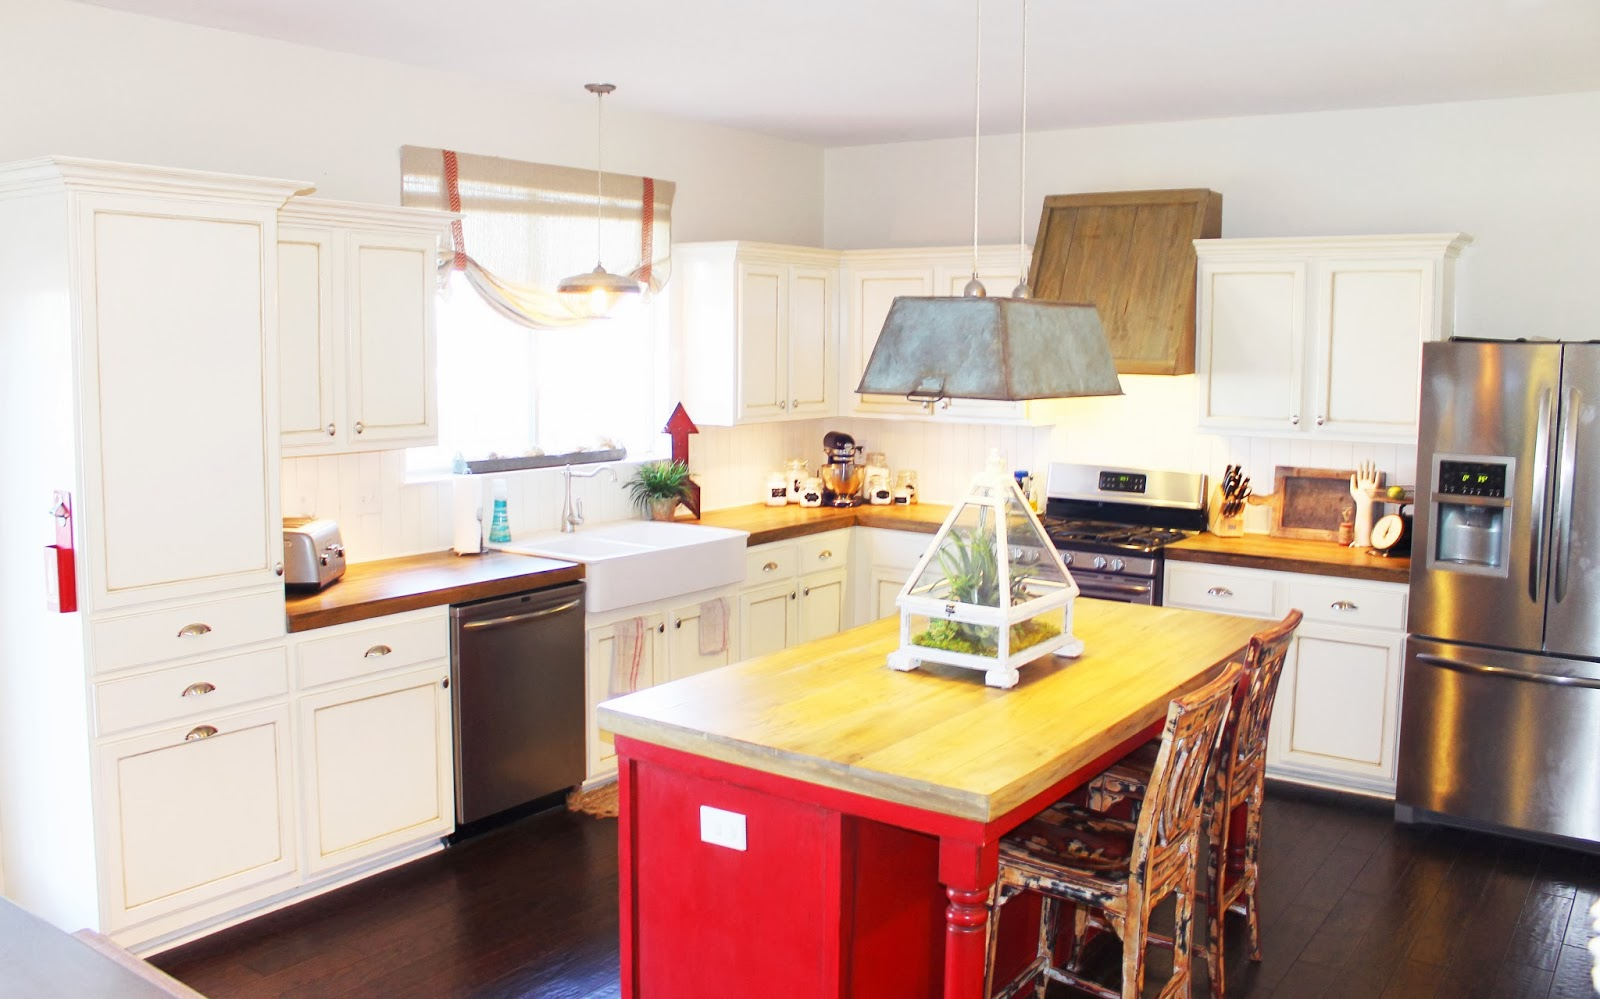 Kitchen Remodel With Faux Reclaimed Wood Countertops, The Ragged Wren On  Remodelaholic